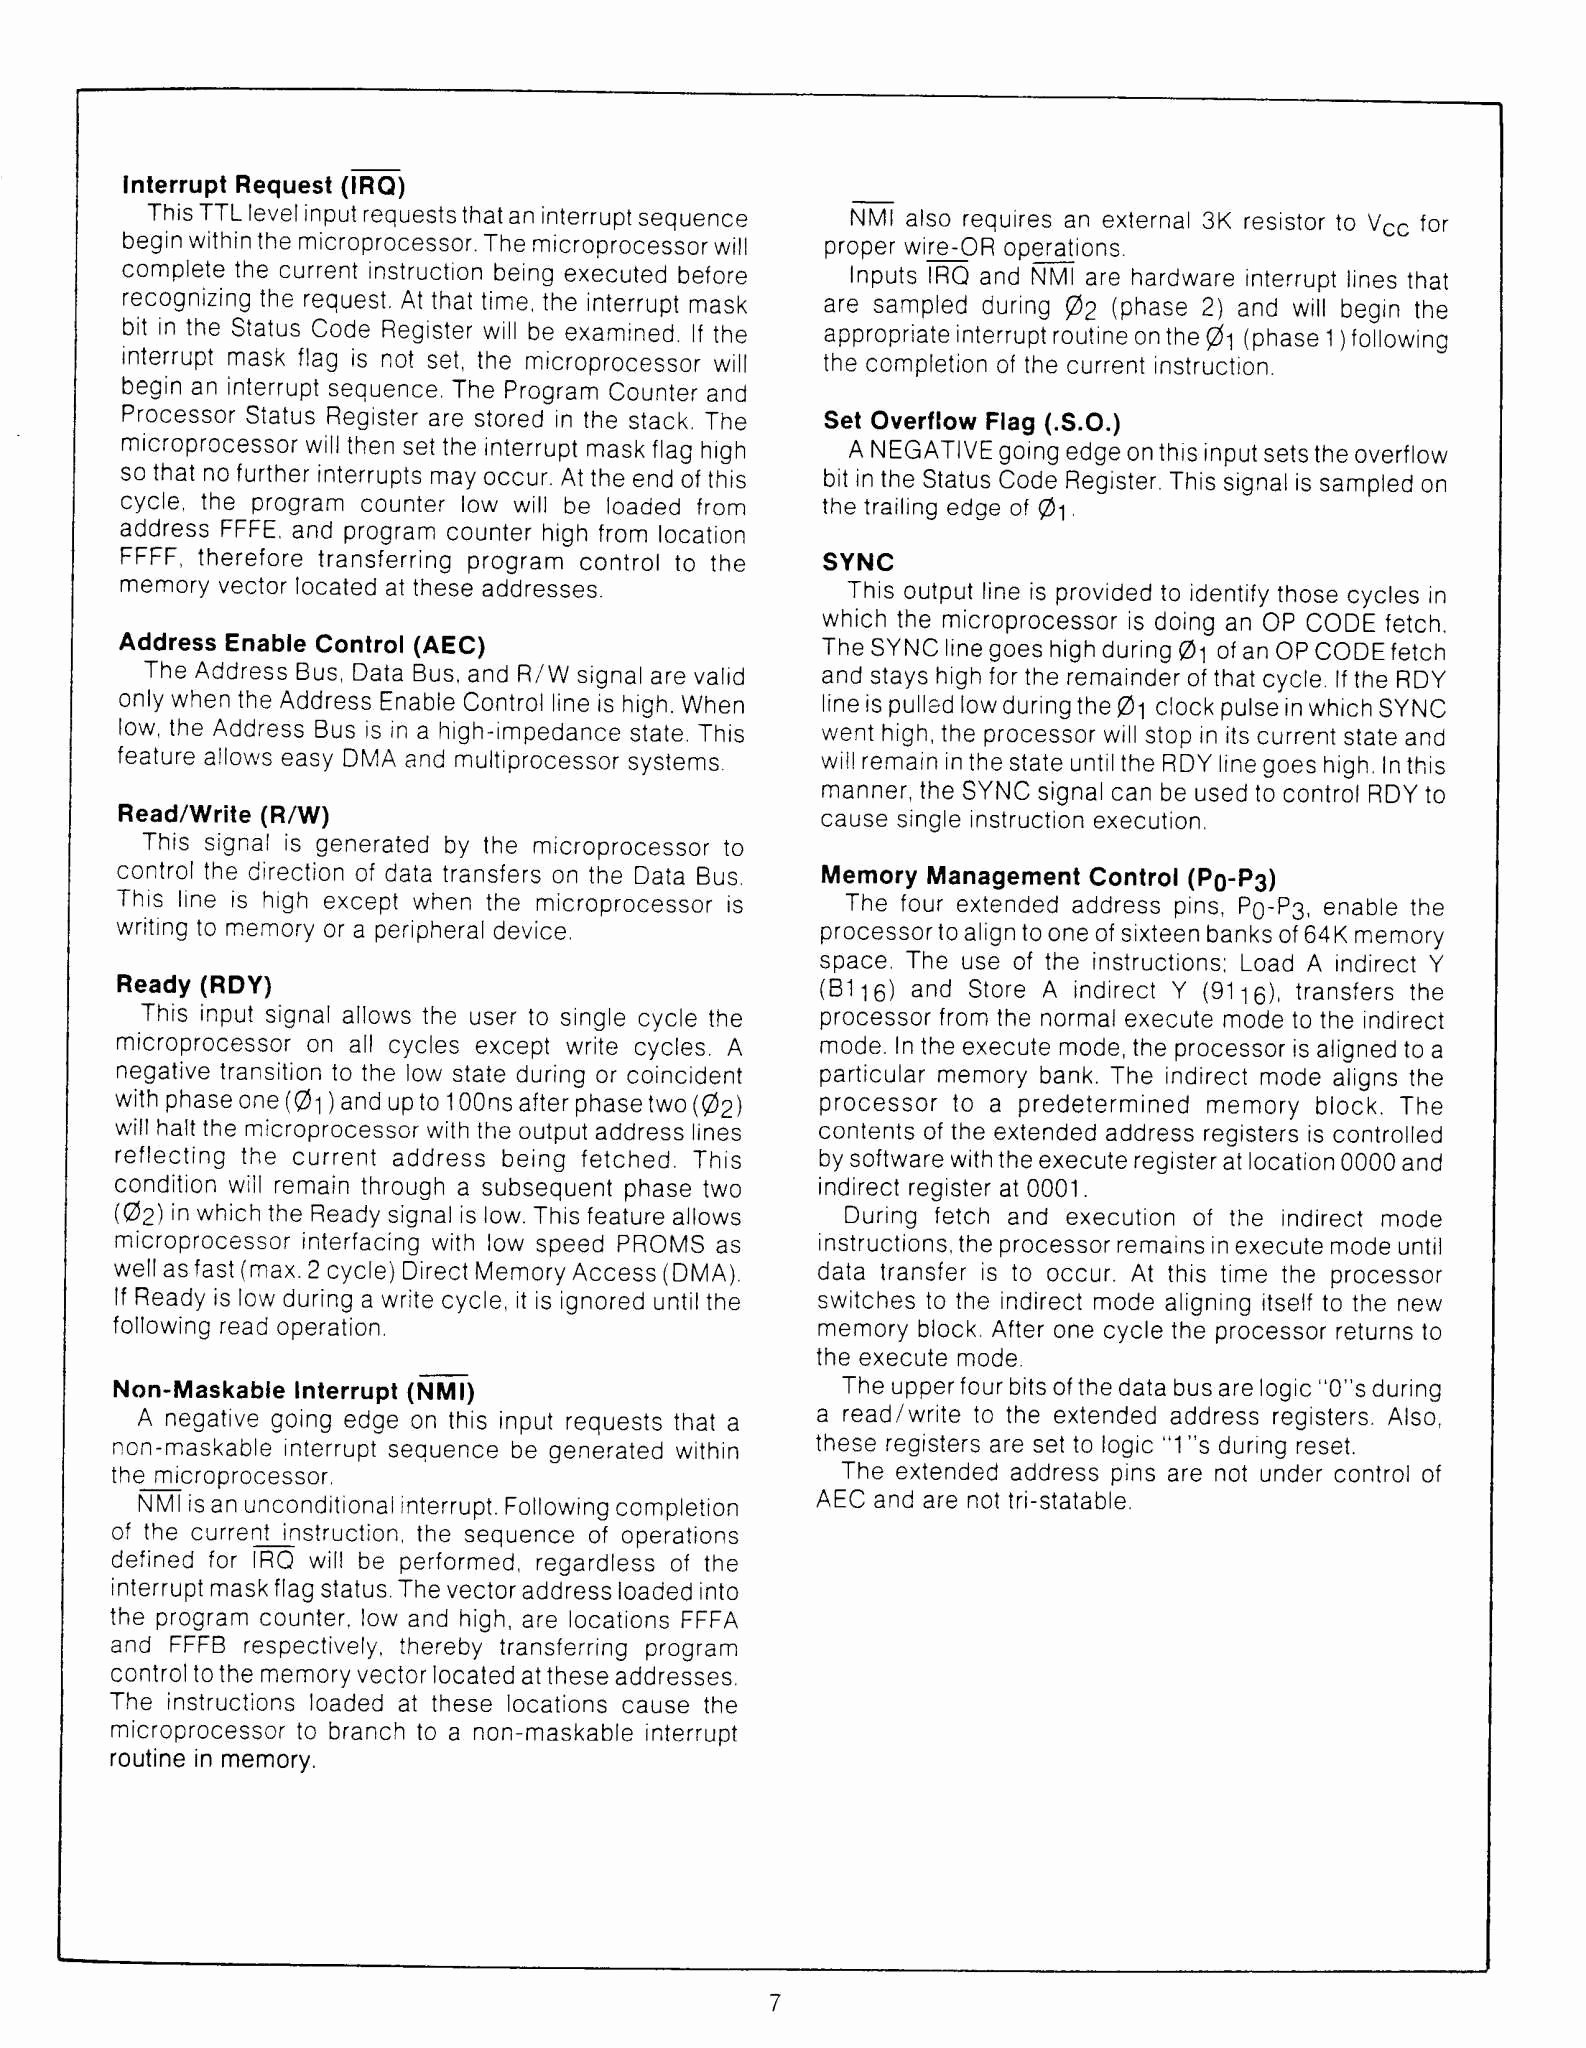 Nova Hunting the Elements Worksheet New Hunting the Elements Worksheet Answers Worksheet Idea